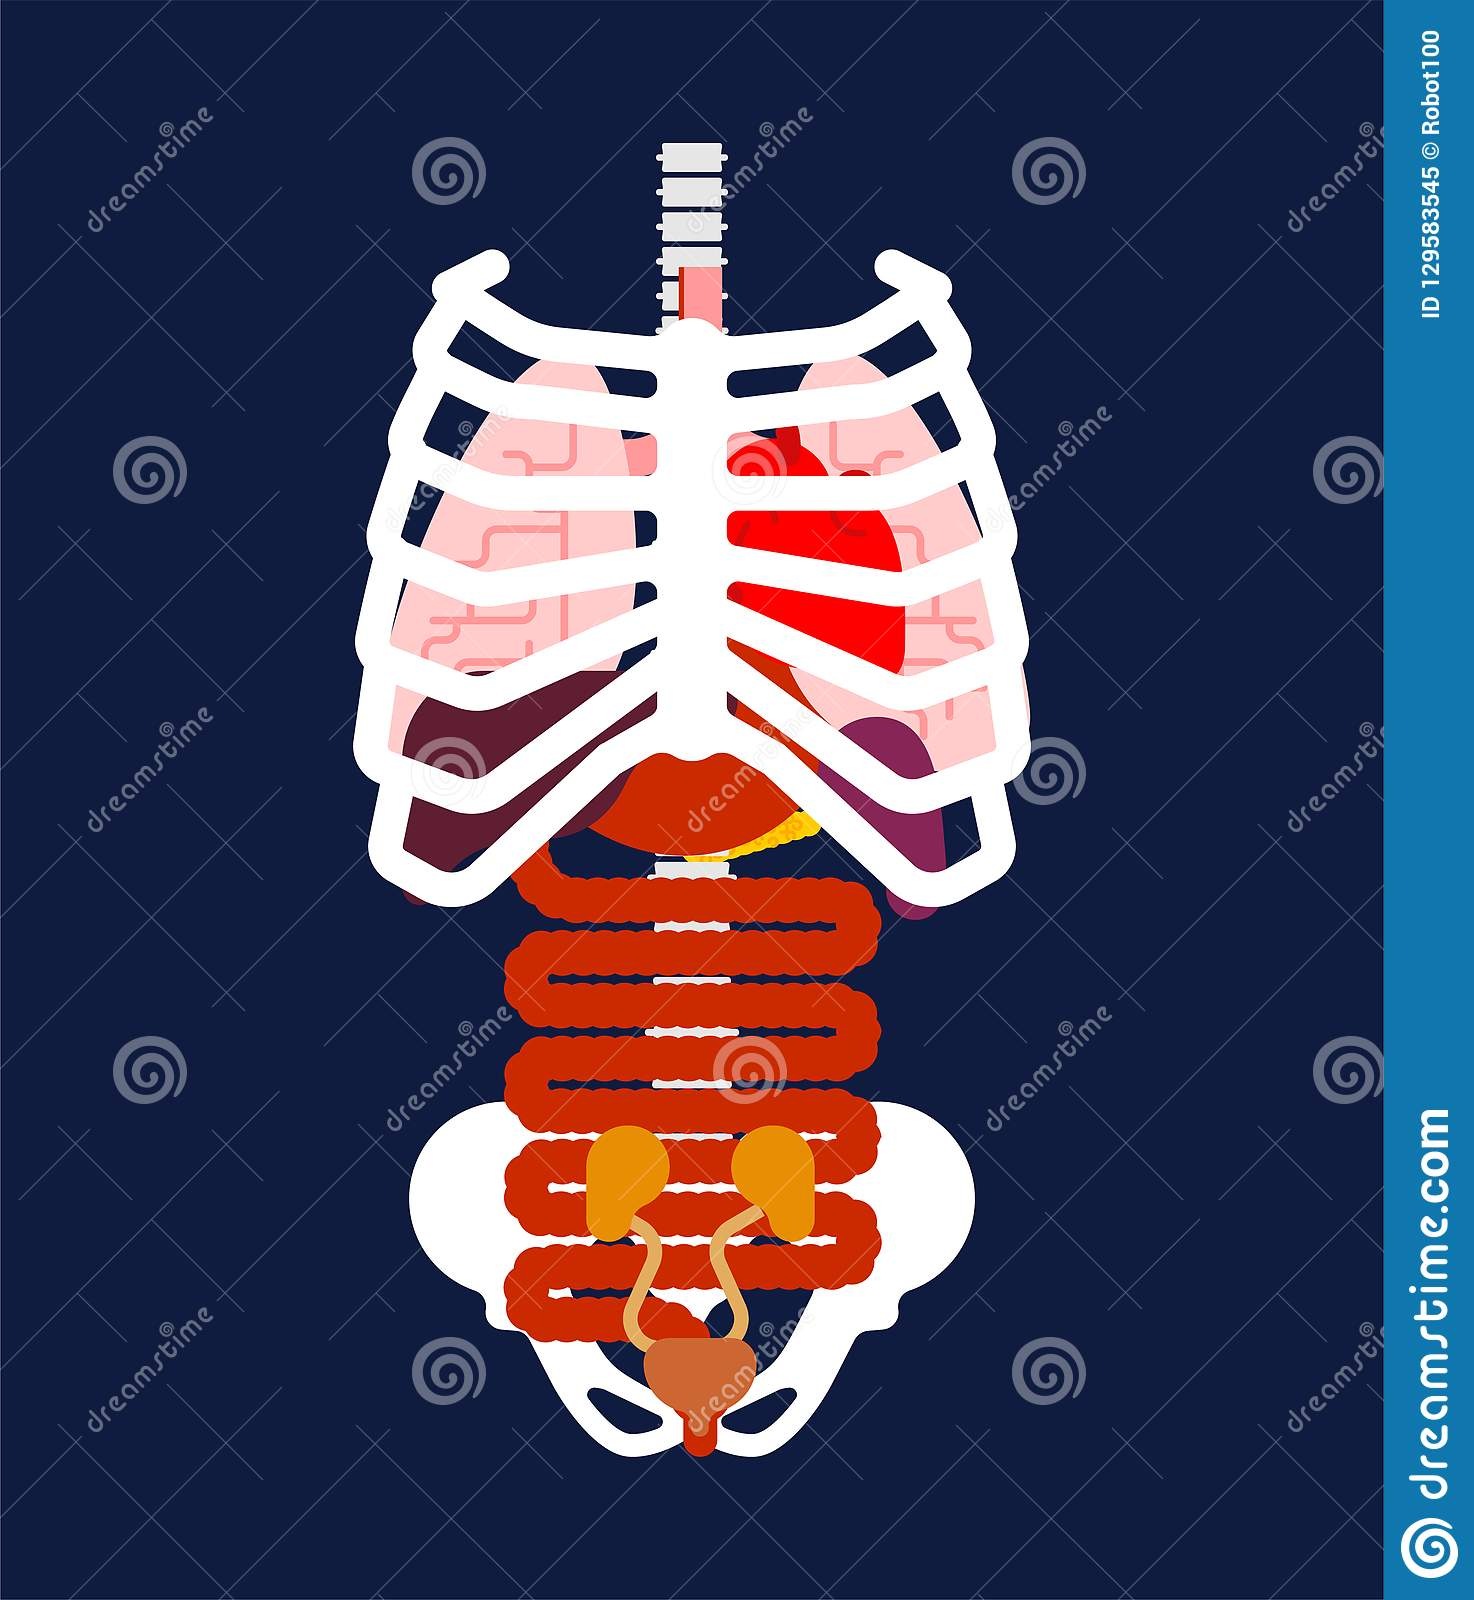 Rib Cage And Internal Organs Human Anatomy Systems Of Man Body Stock Vector Illustration Of Cage Medical 129583545